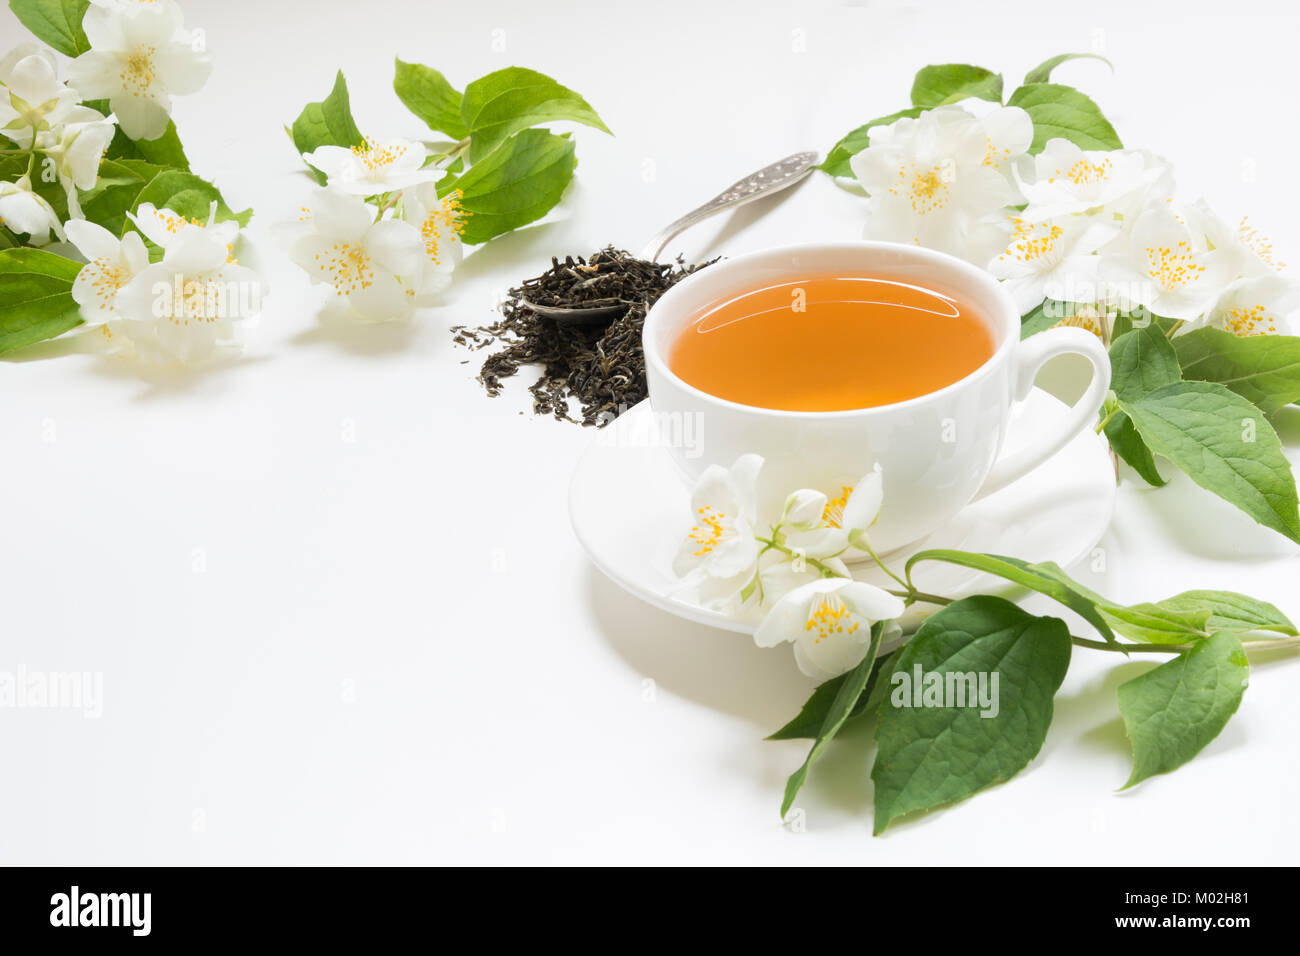 Jasmine Dry Green Tea Leaves With Fresh Jasmine Flowers And Cup Of